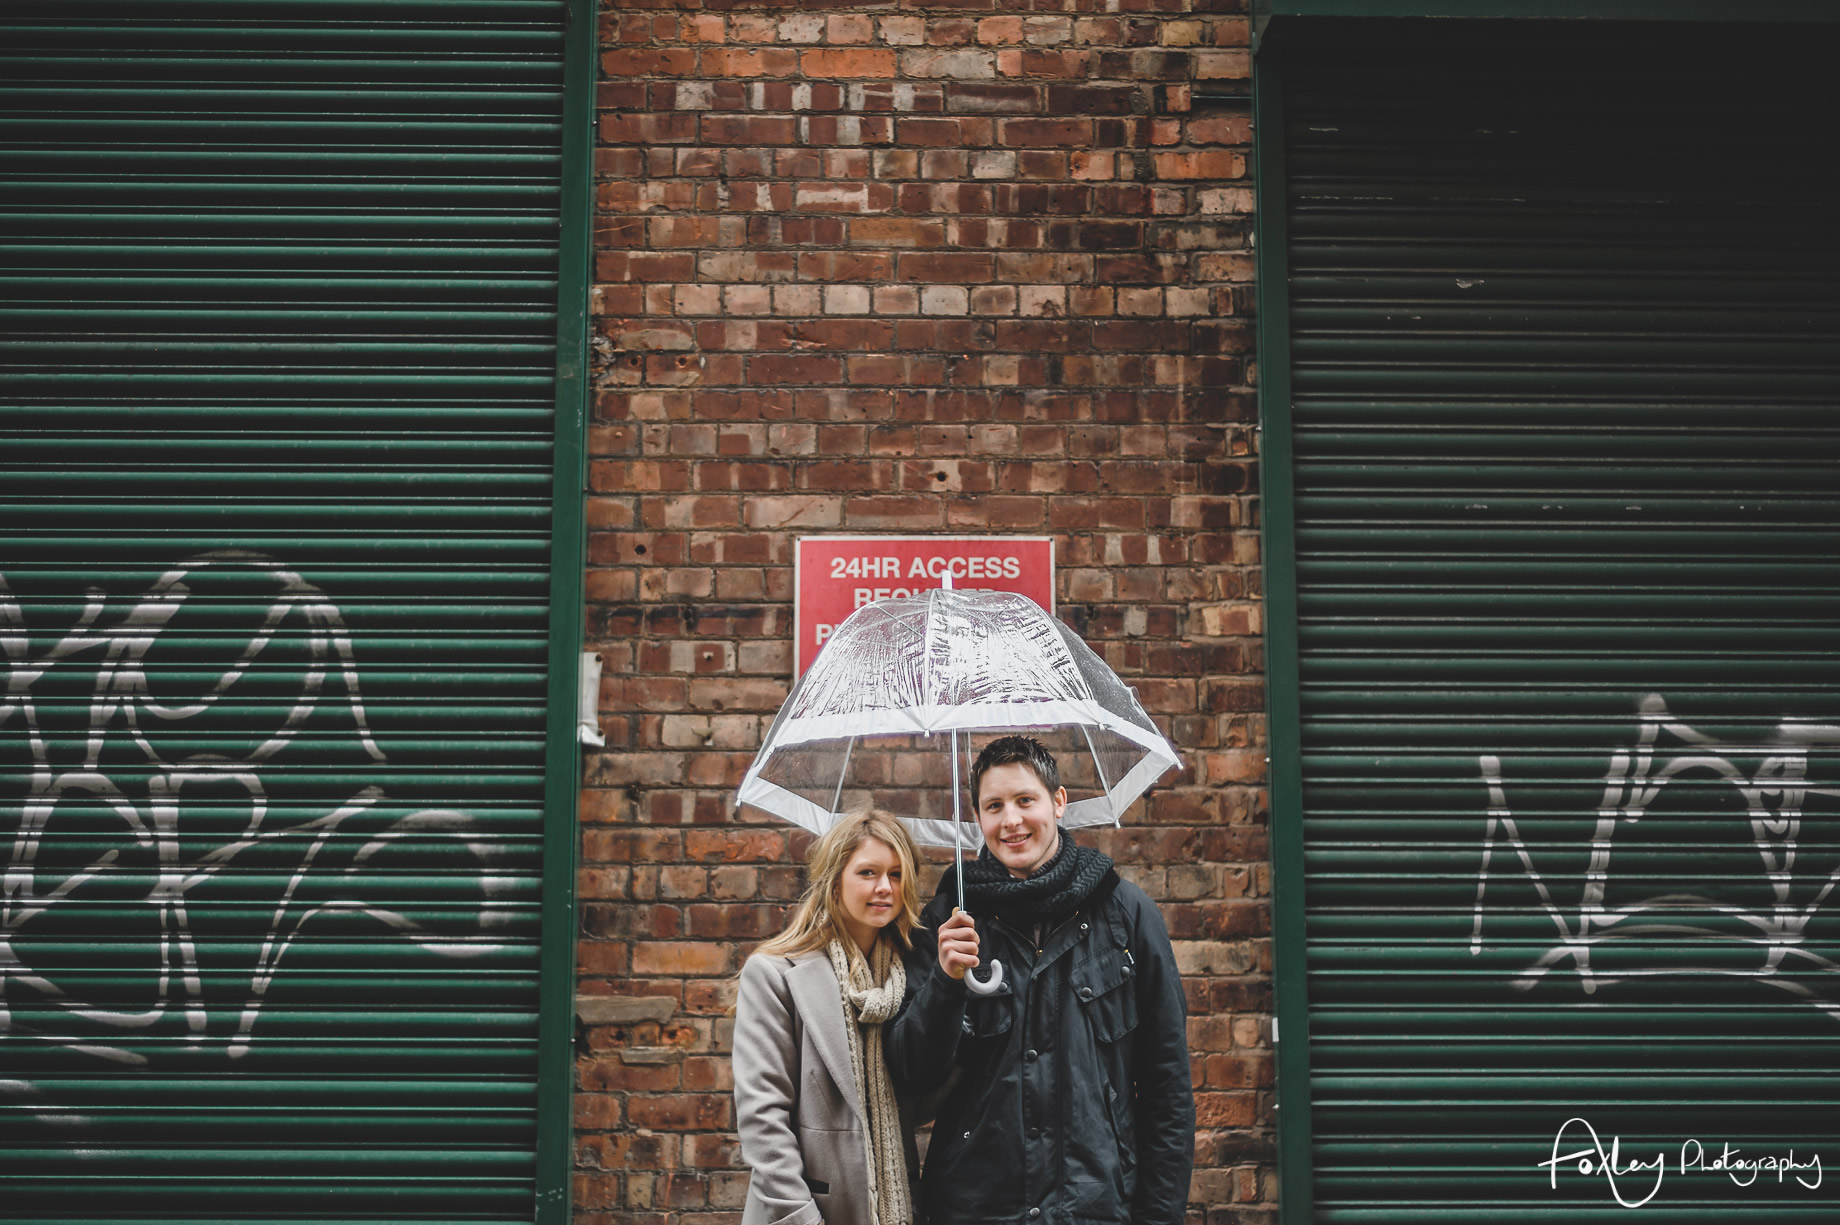 Gemma-and-Lewis-Pre-Wedding-Shoot-Manchester-City-Centre-006